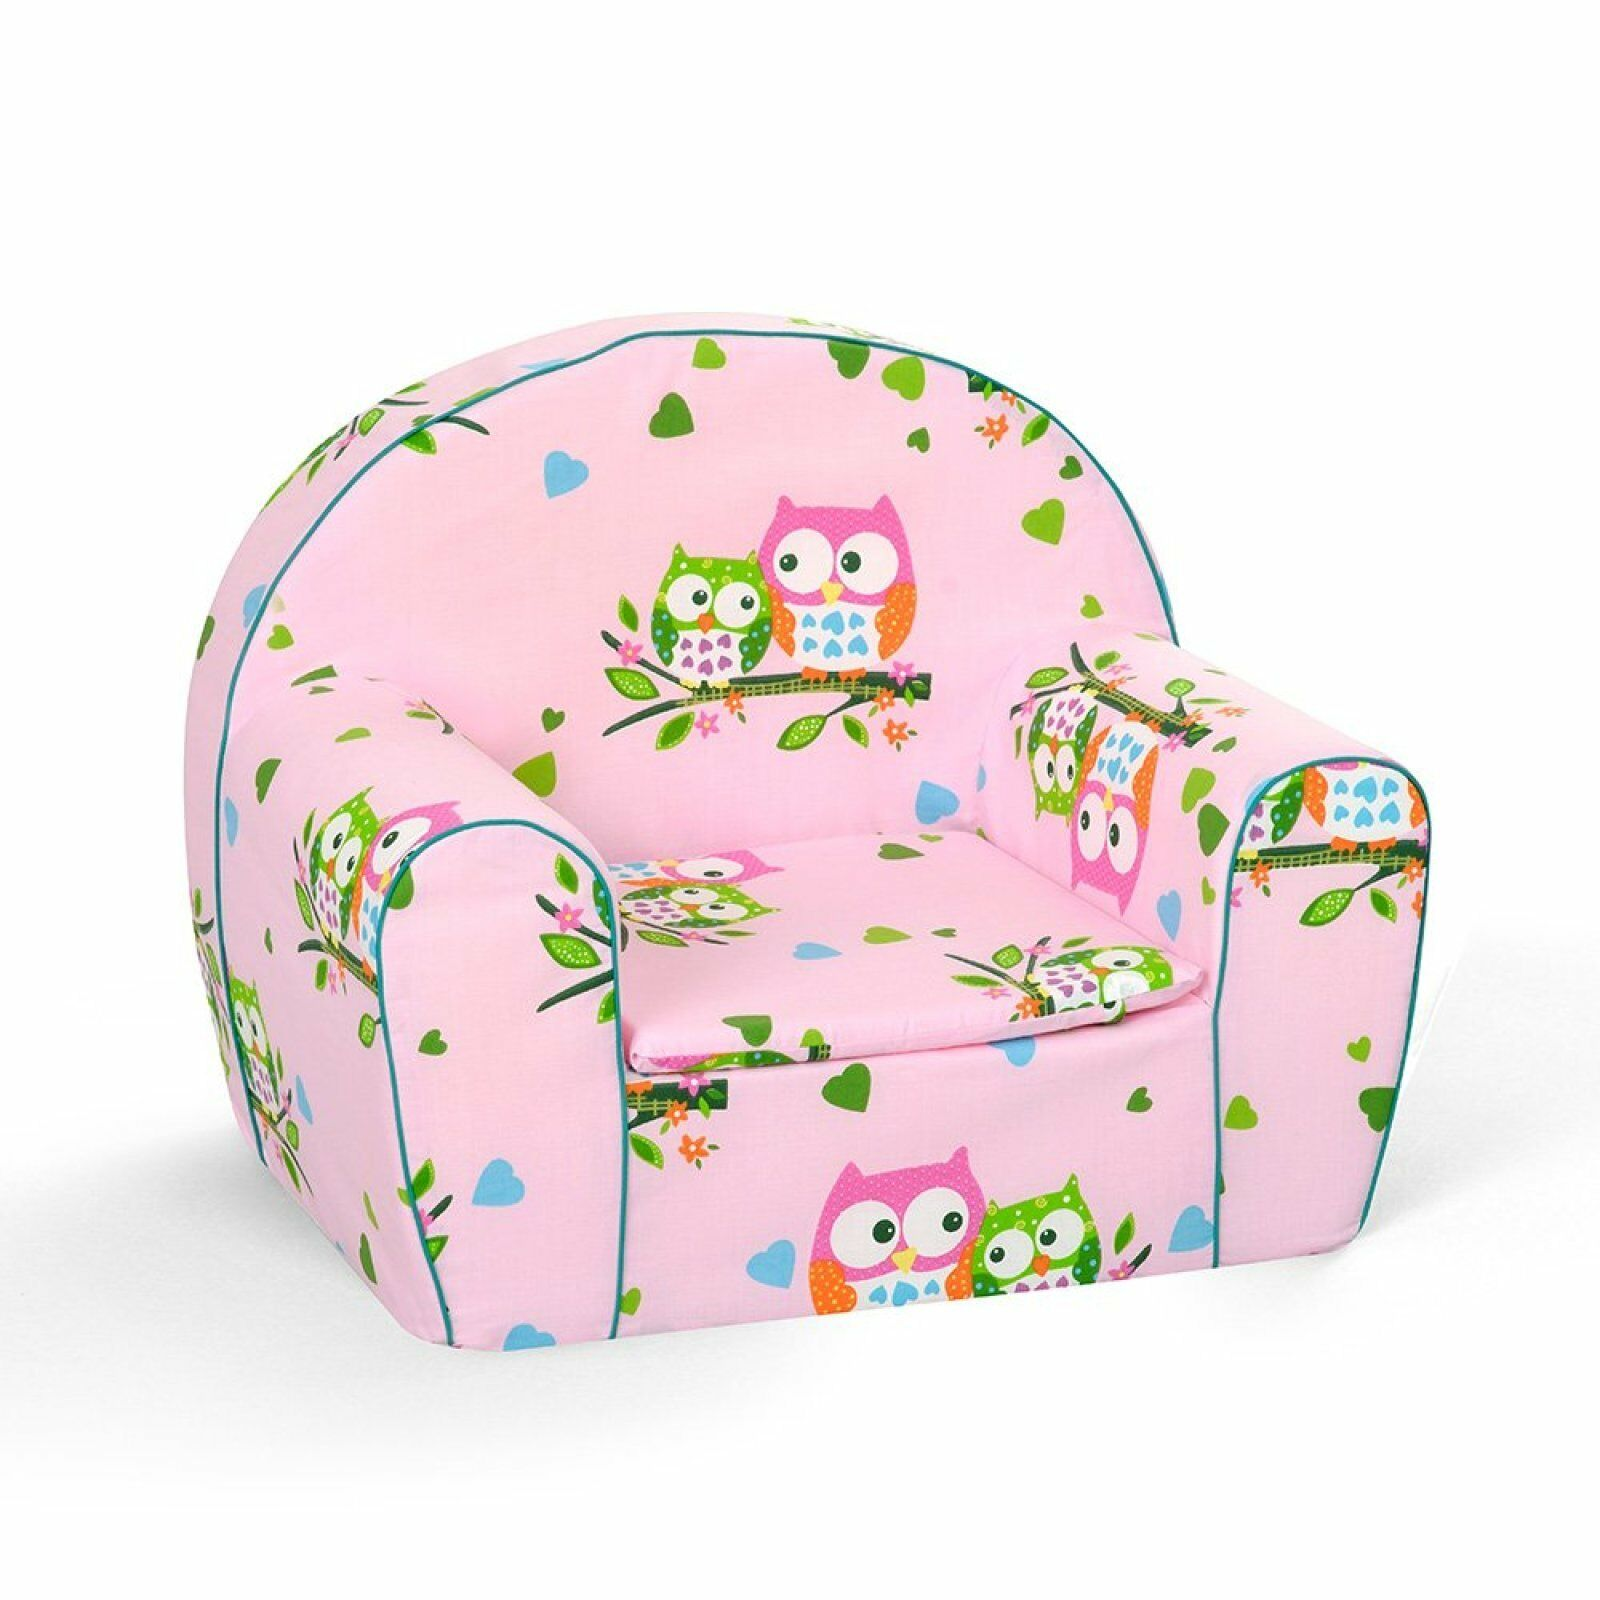 Pleasant Details About Childrens Chair Armchair Sofa Seat Stool For Kids Toddlers Childs Sofa Seat New Creativecarmelina Interior Chair Design Creativecarmelinacom